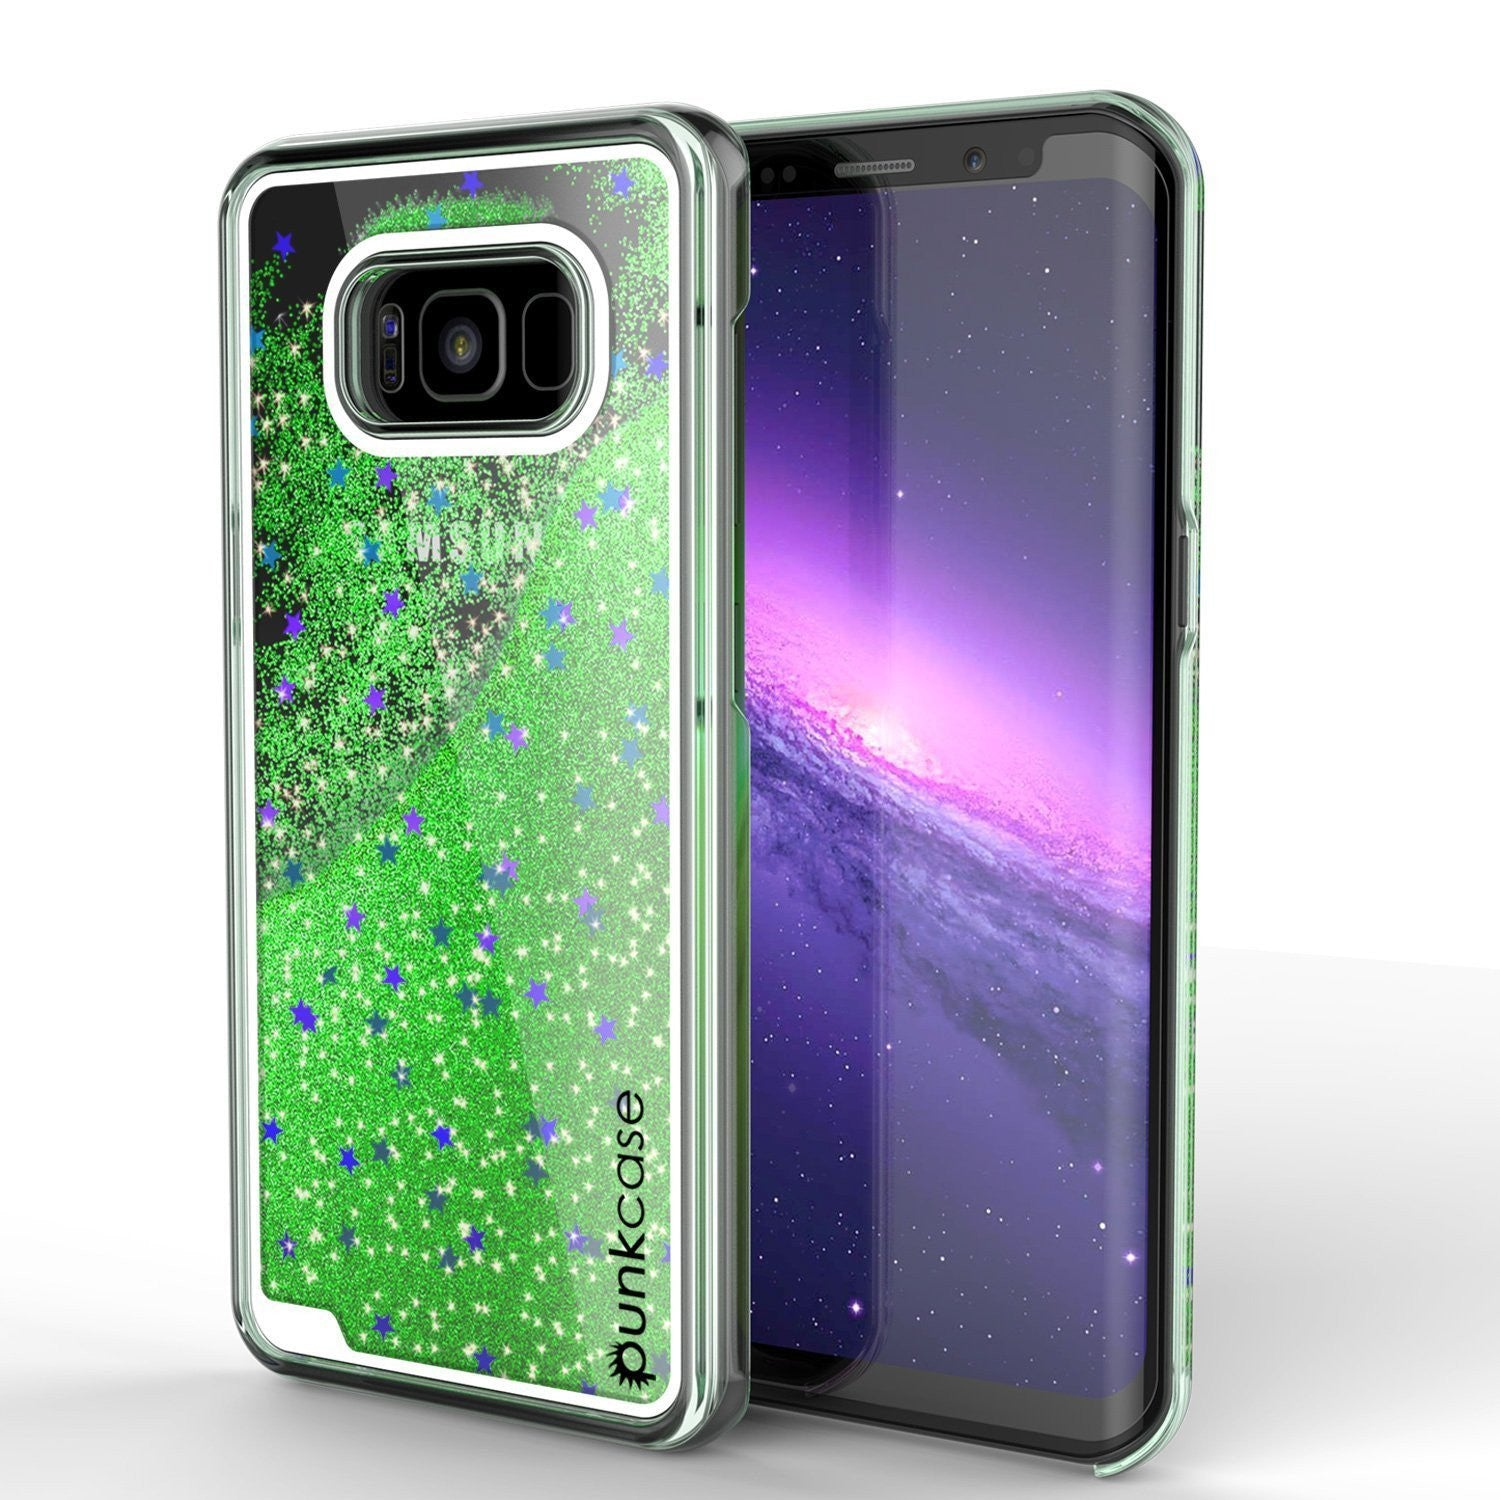 Galaxy S8 Case, Punkcase [Liquid Series] Protective Dual Layer Floating Glitter Cover + PunkShield Screen Protector for Samsung S8 [Green]